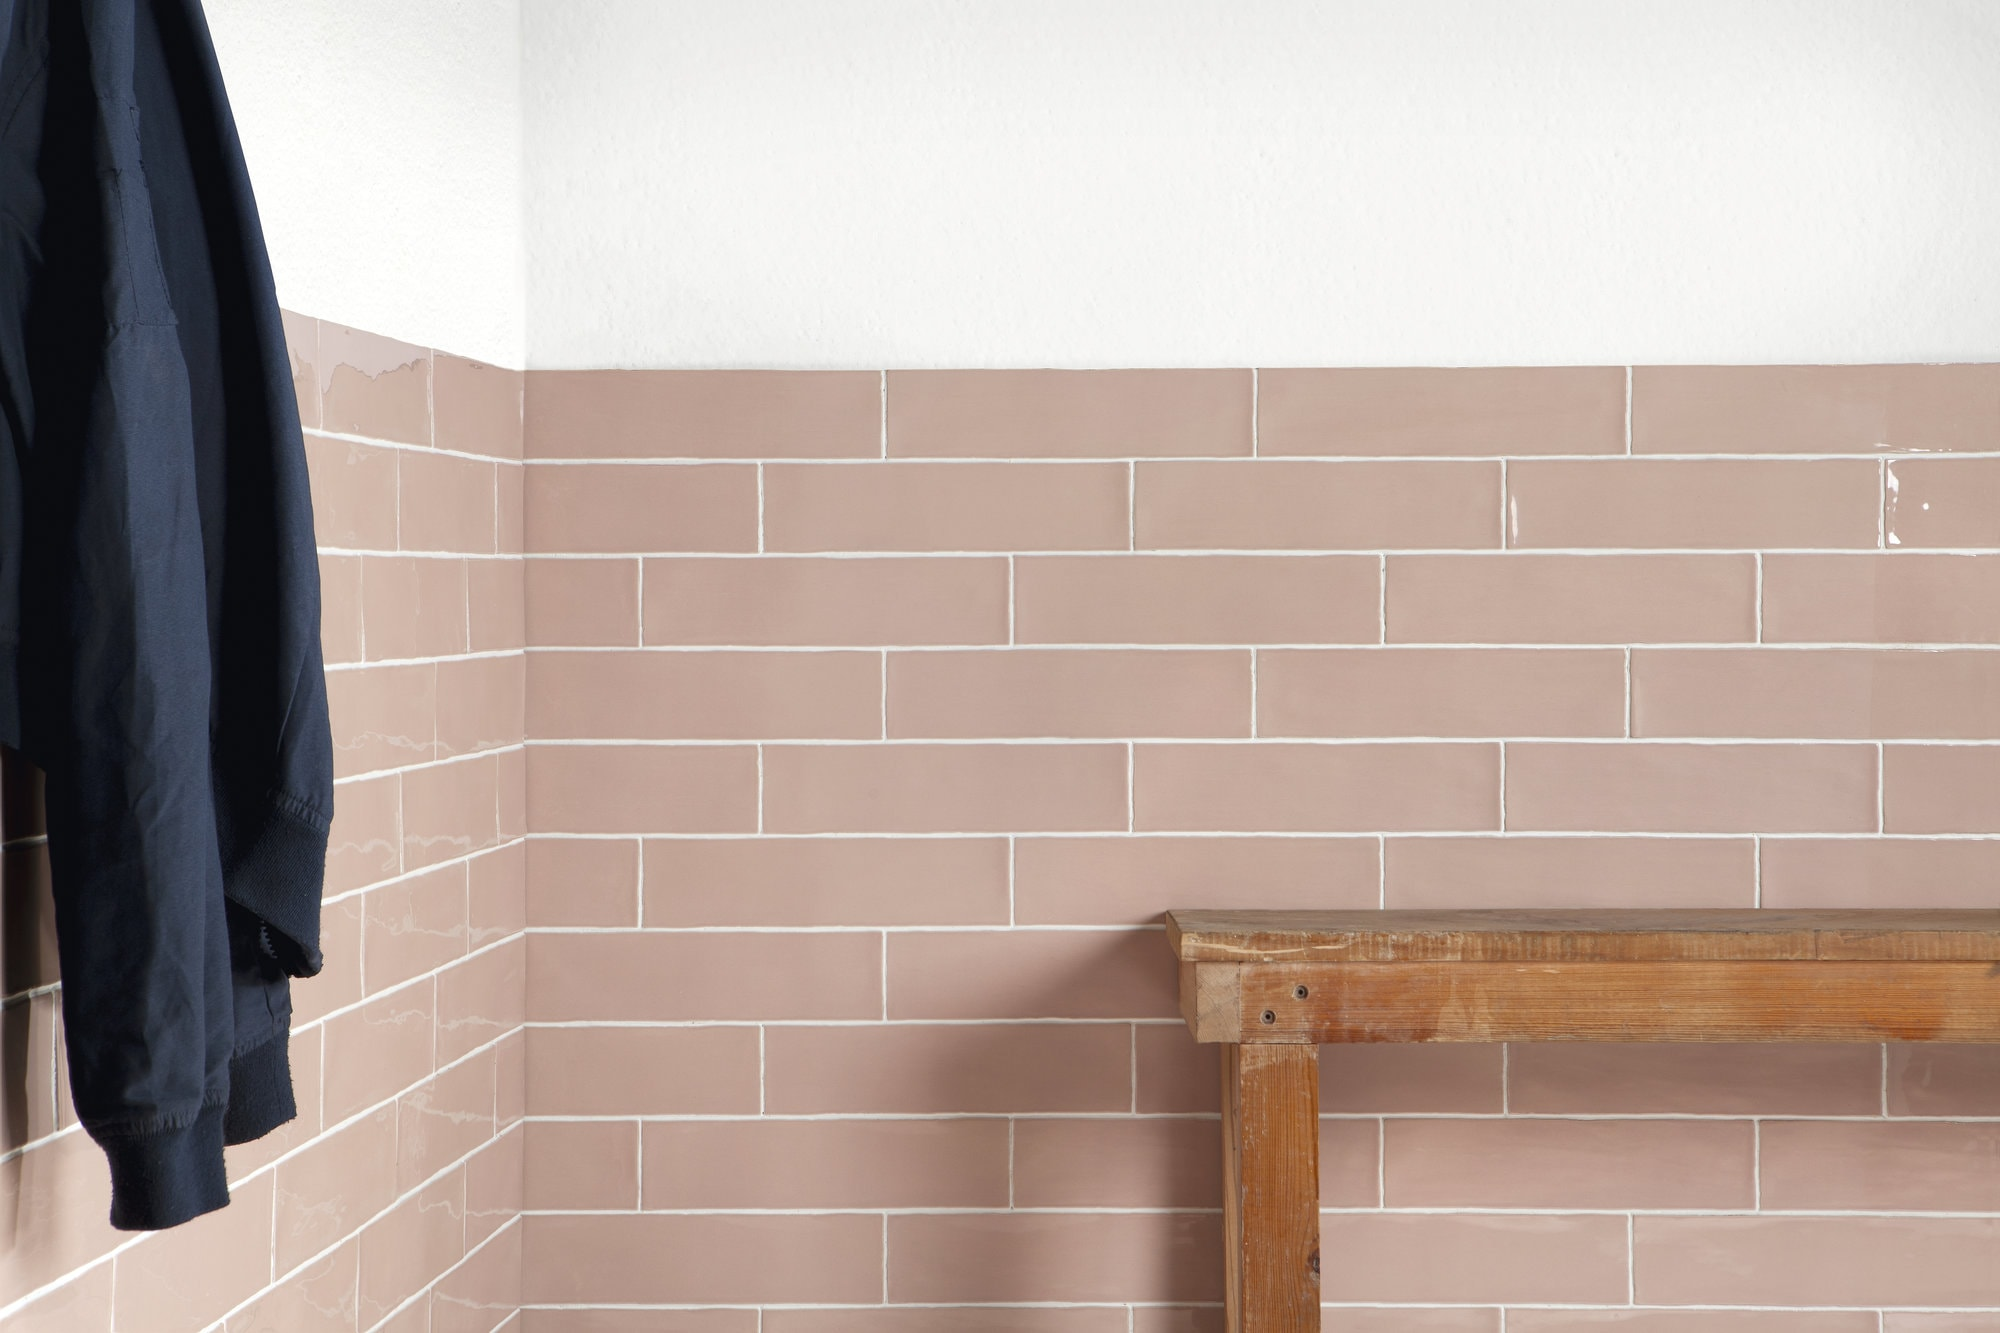 Lifestyle image of the Deco Metro Poitiers pink 7,5x30cm gloss wall tile from Spain.